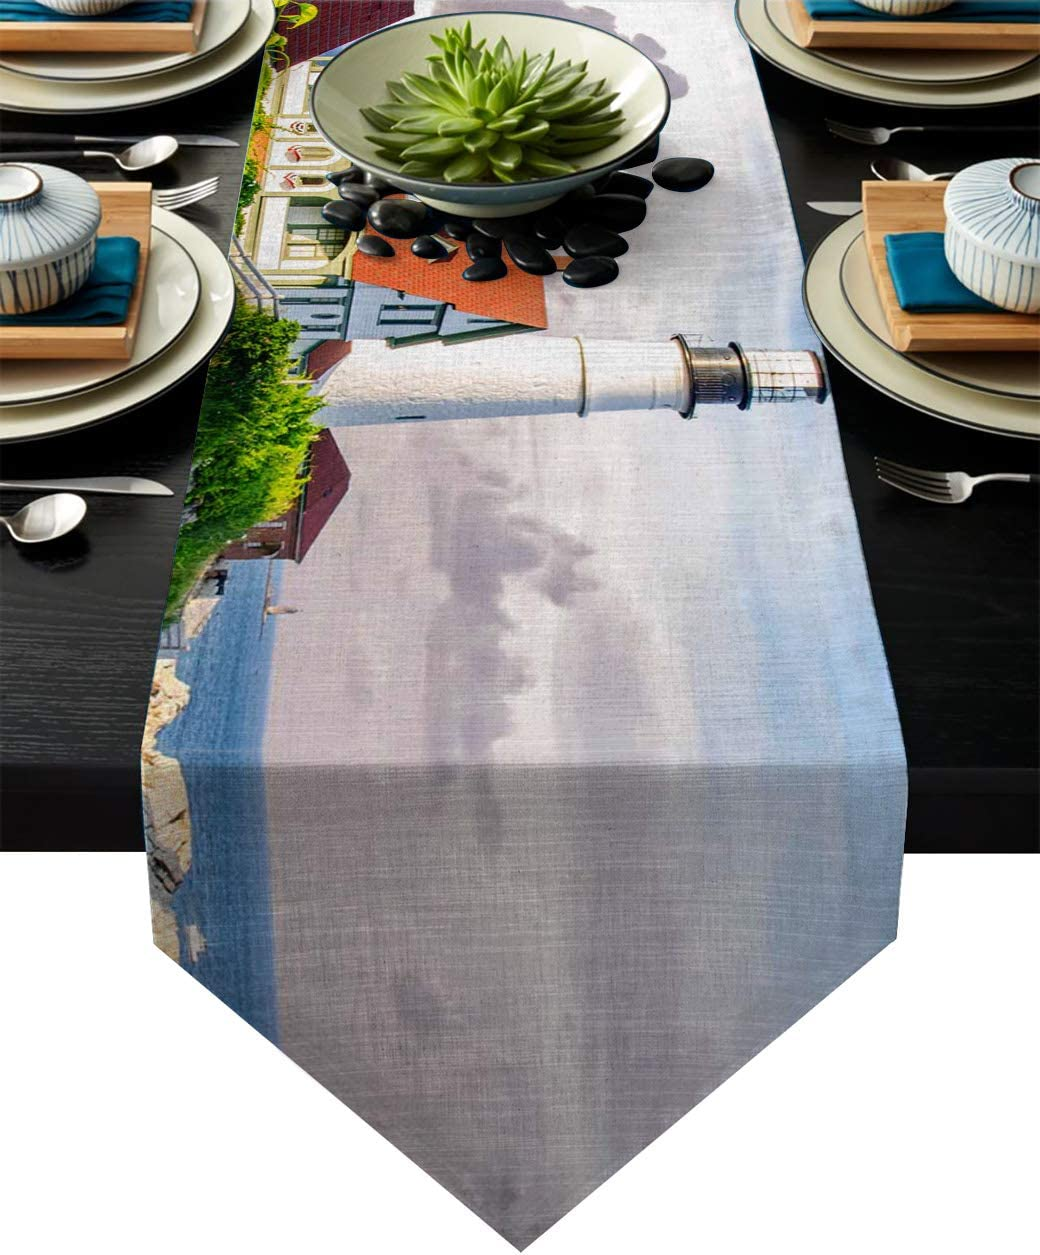 Mi Chanker Coastal House and Lighthouse Cotton Linen Table Runner for Catering Events Dinner Parties Wedding Spring Holiday Indoor or Outdoor Parties Summer Flower